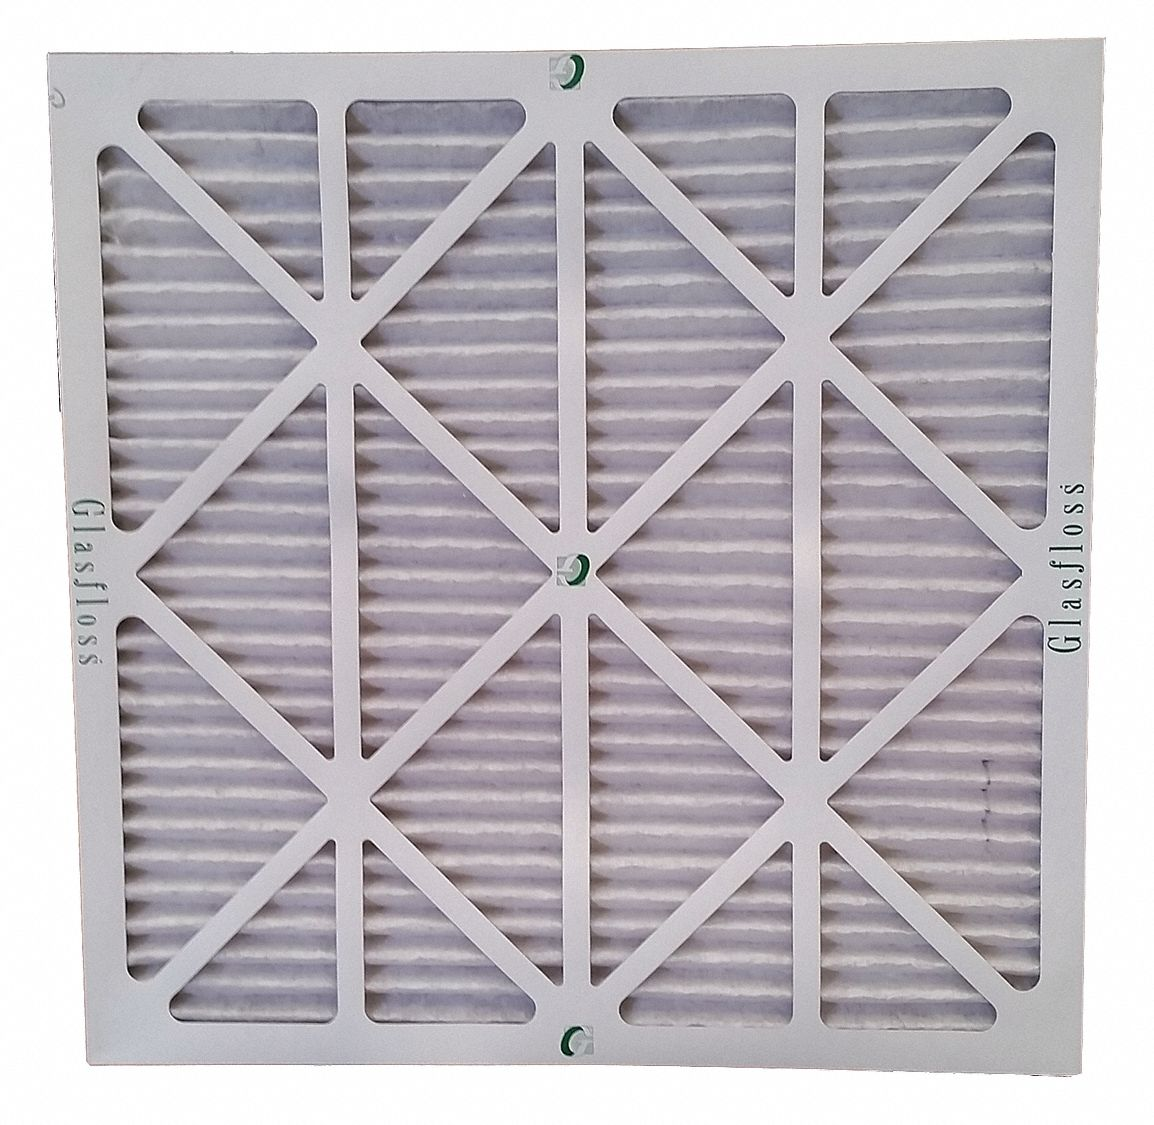 Replacement Pre-Filters, For Use With Mfr. No. HC55U, HC74U, HC74UX